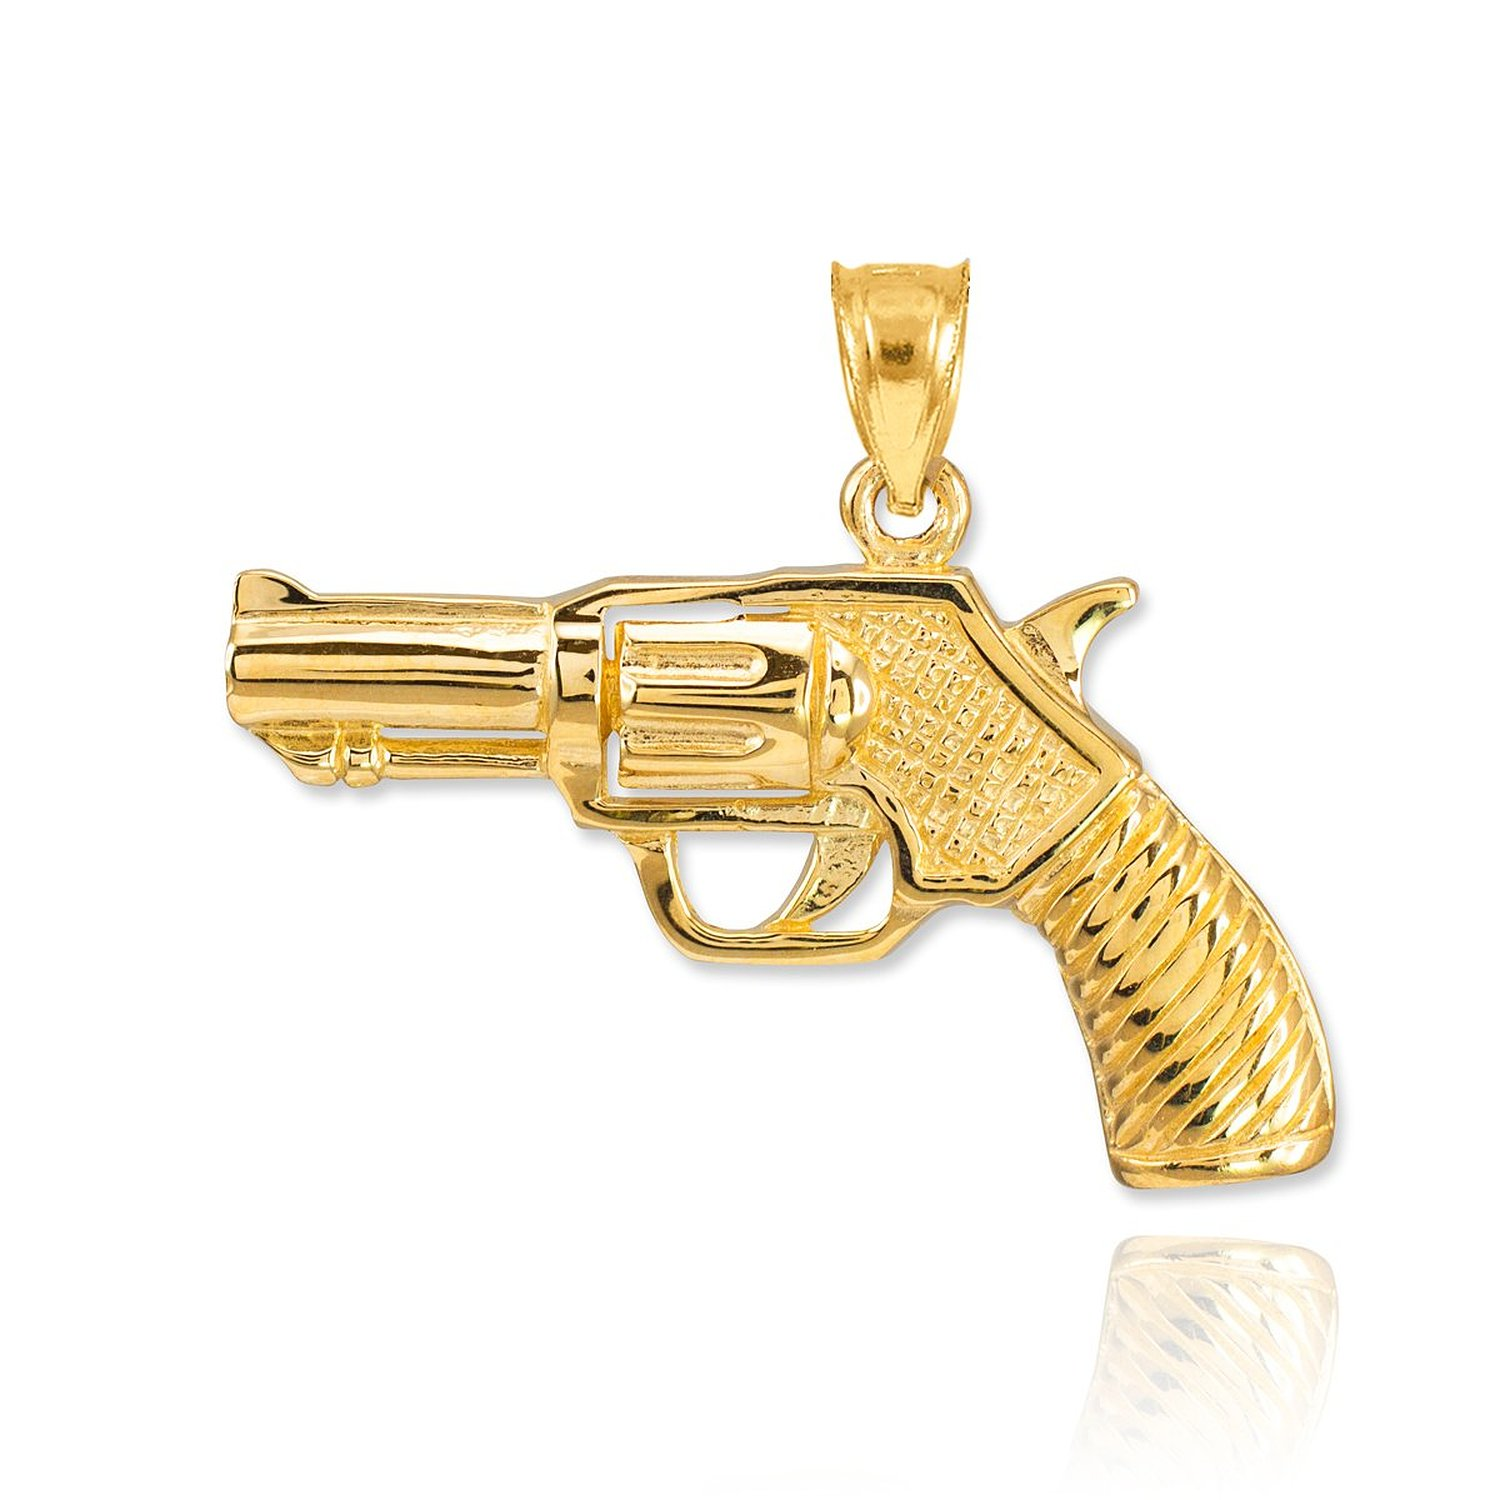 Amazon.com: fine 10k yellow gold revolver pistol charm gun pendant: jewelry